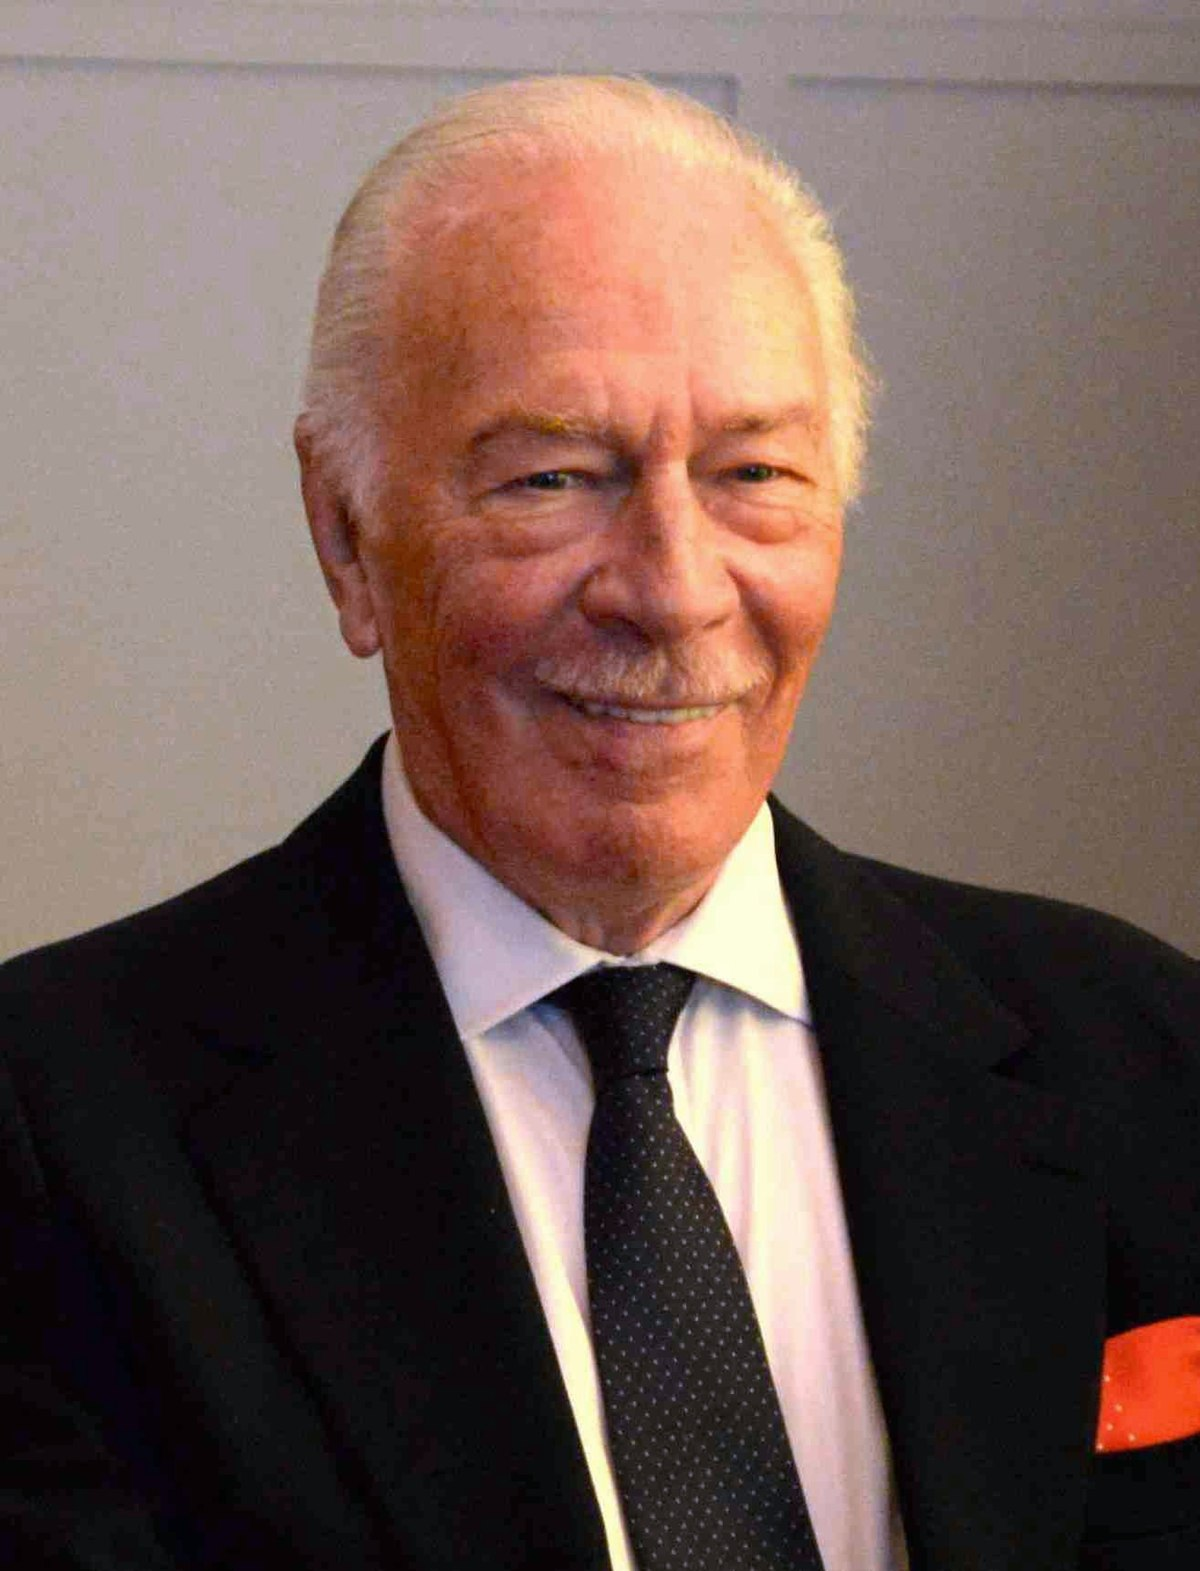 Christopher Plummer Wikipedia